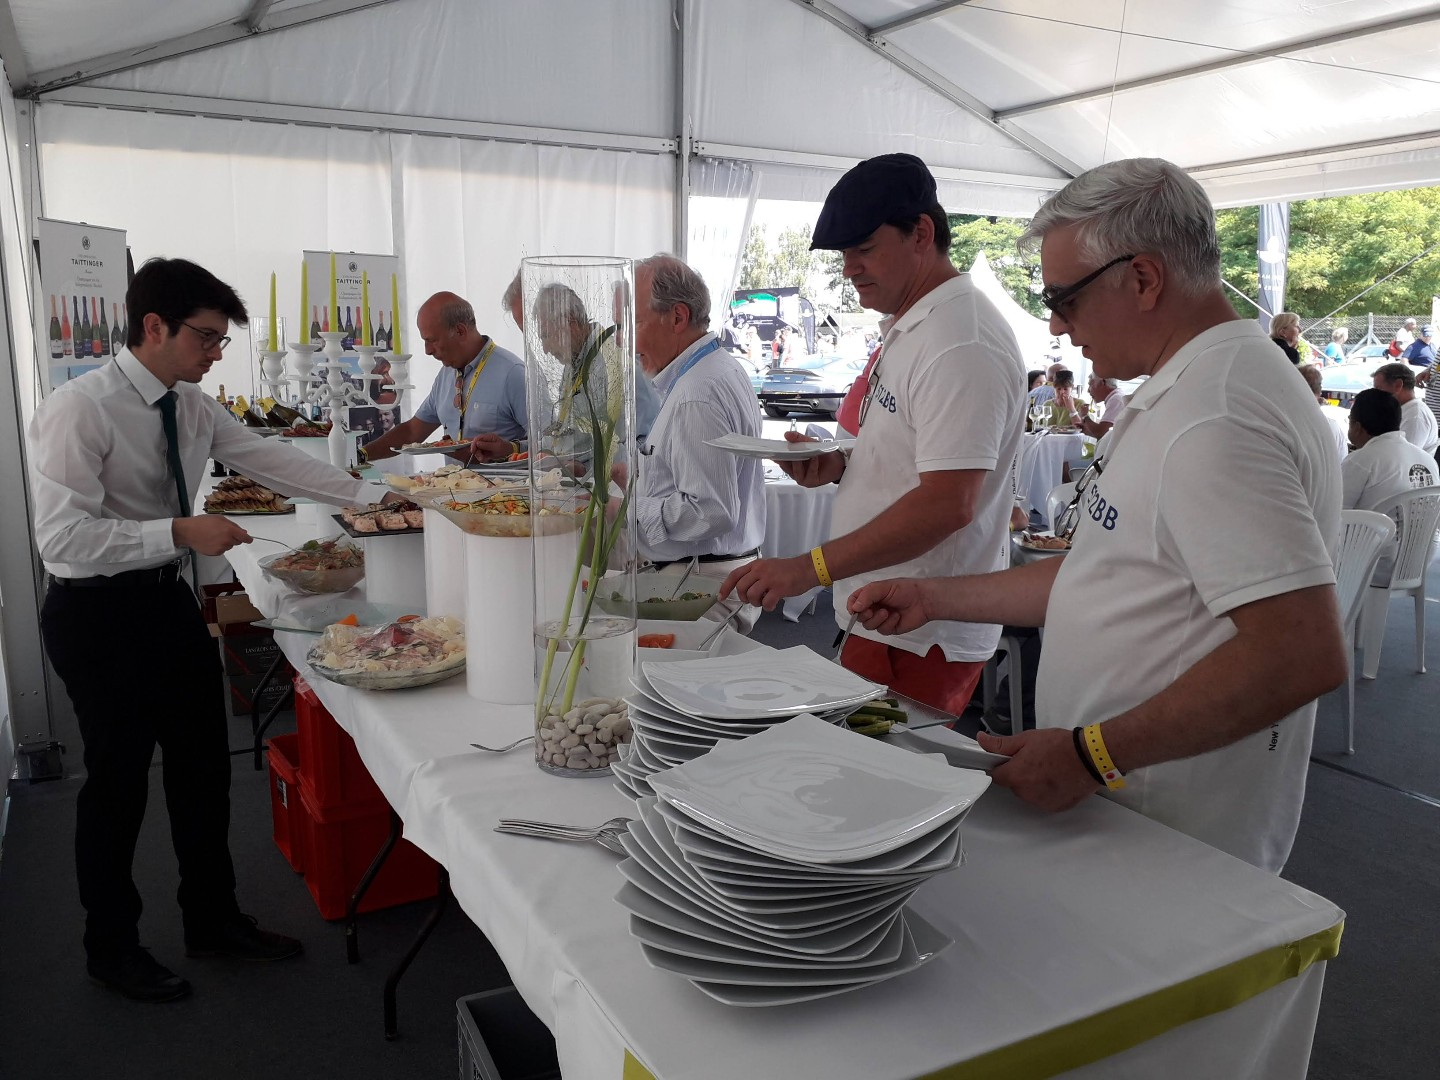 180706_Classic Le Mans_Lunch_AReed.jpg